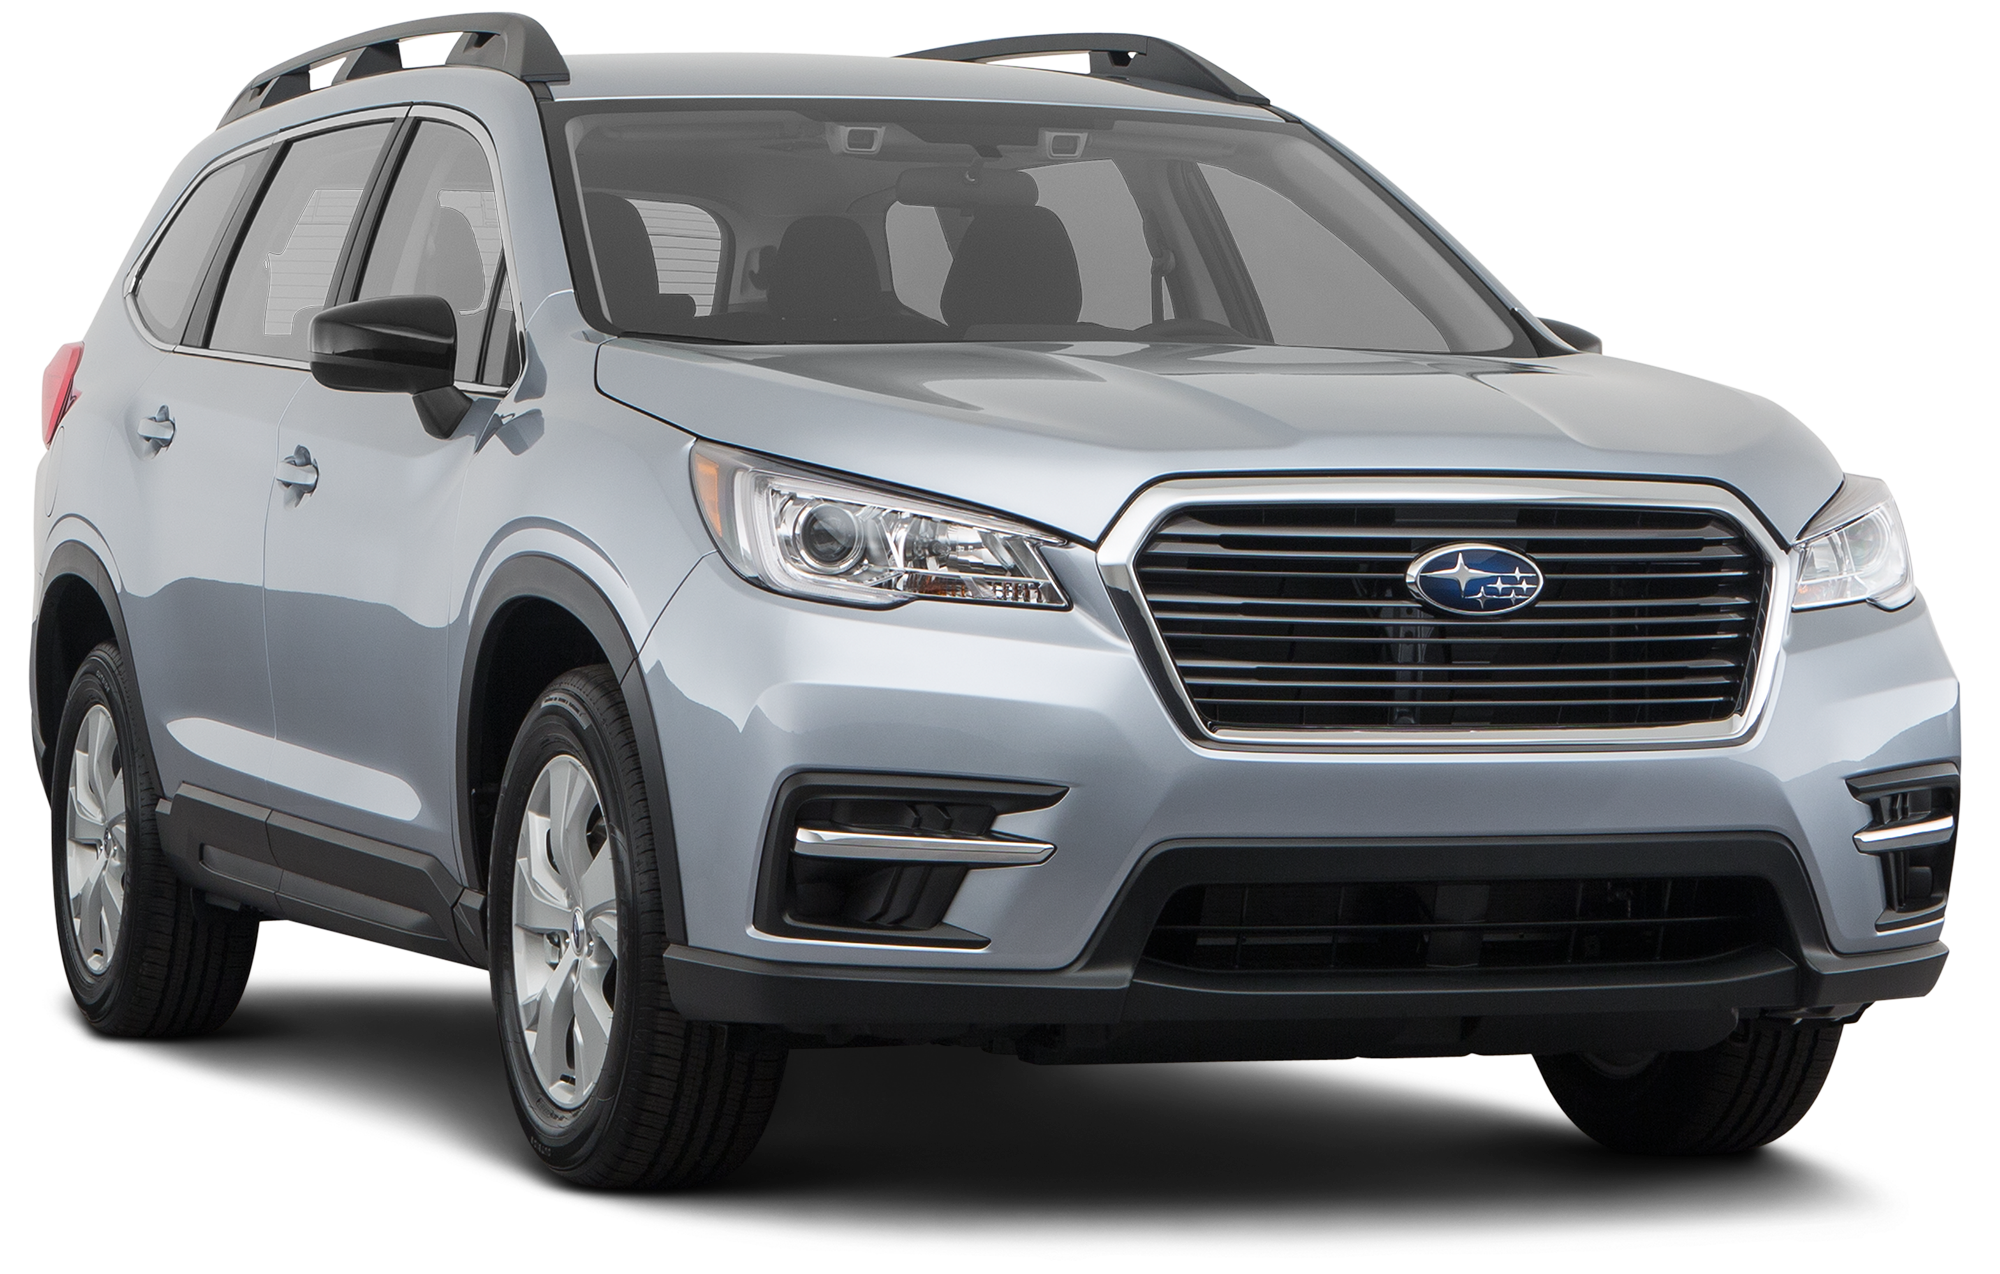 http://images.dealer.com/ddc/vehicles/2020/Subaru/Ascent/SUV/trim_Base_9a1dc6/perspective/front-right/2020_76.png